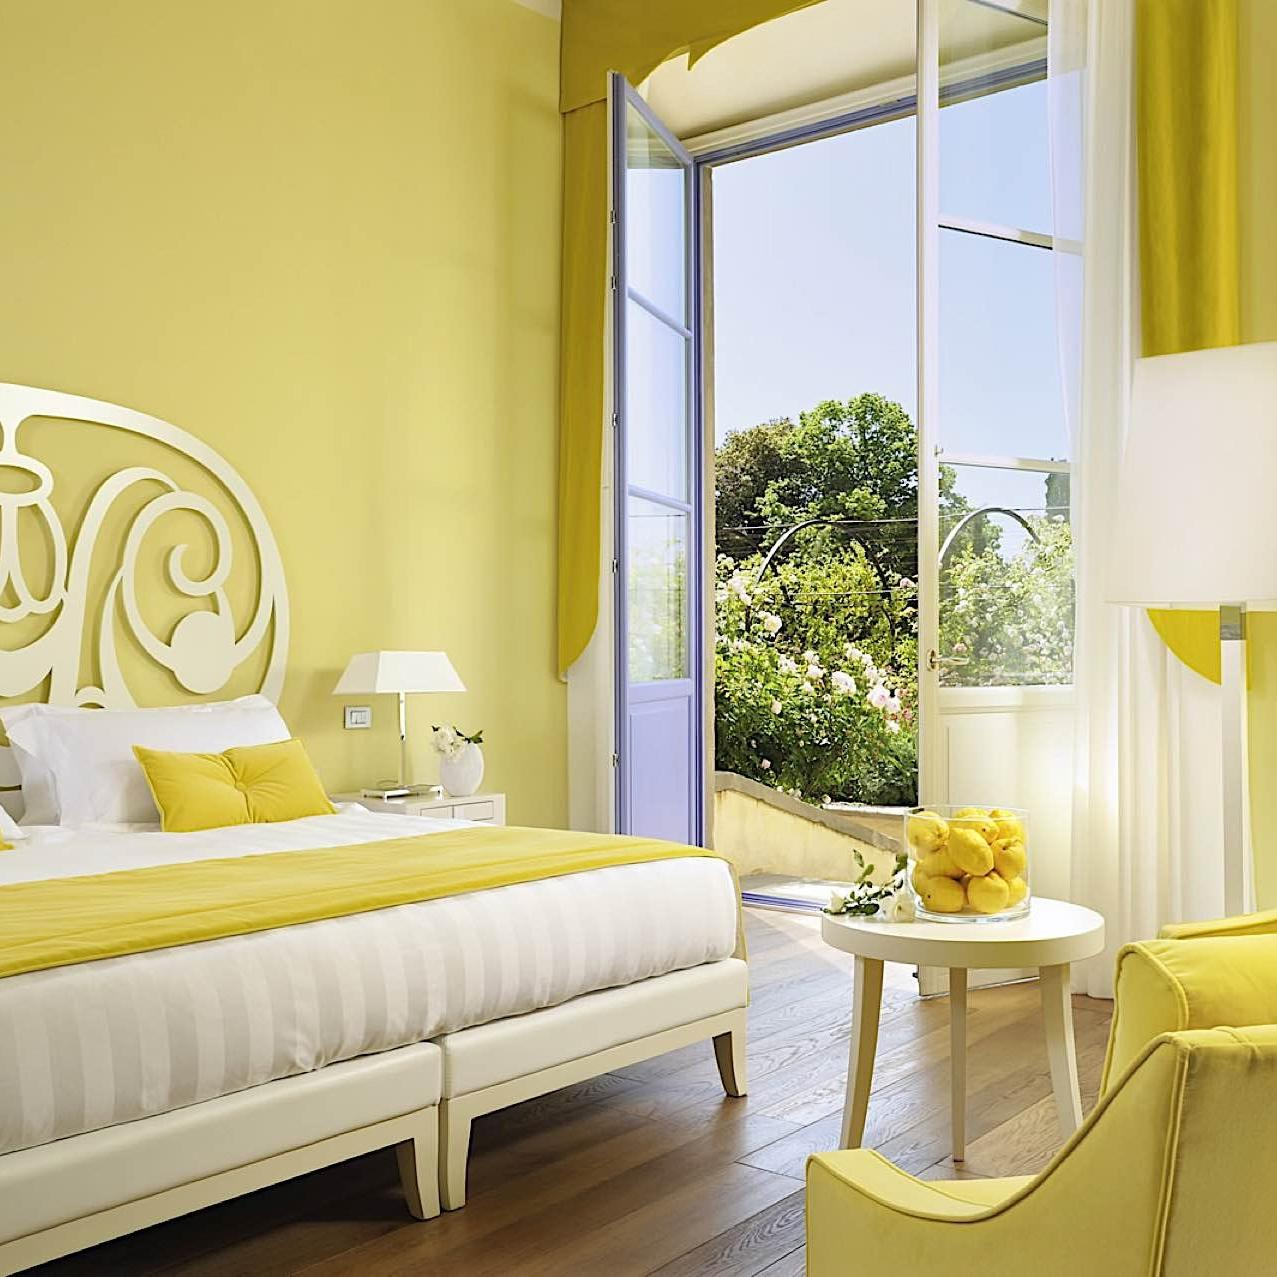 Chini Pavilion Junior Suite | Villa Le Maschere